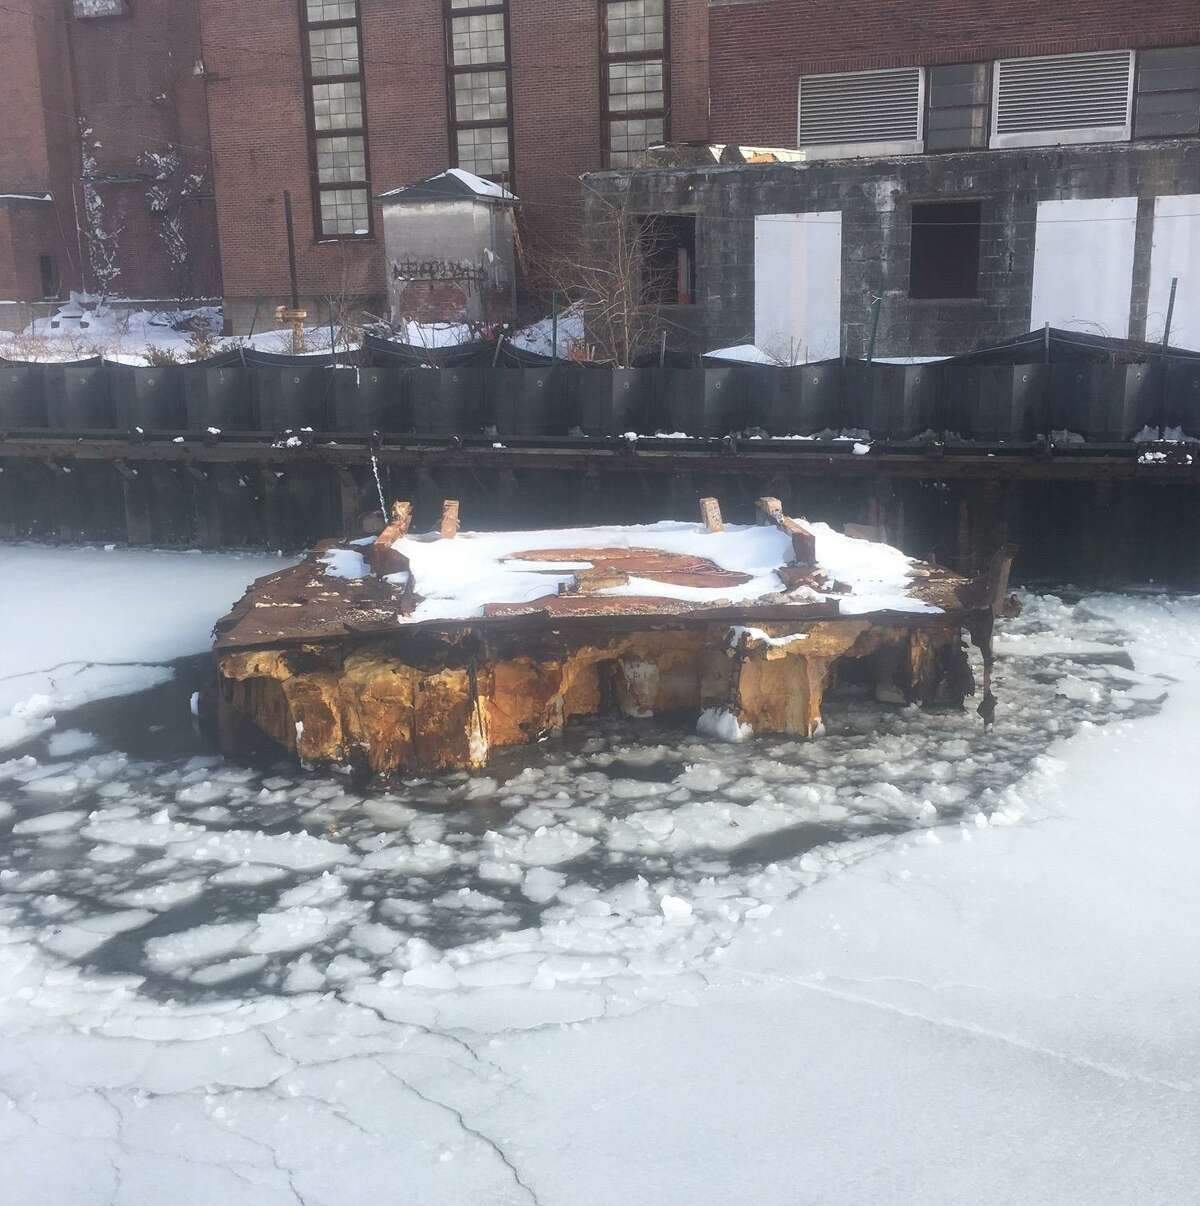 An abandoned barge tied to English Station power plant at Ball Island on the Mill River, photographed in January 2021.